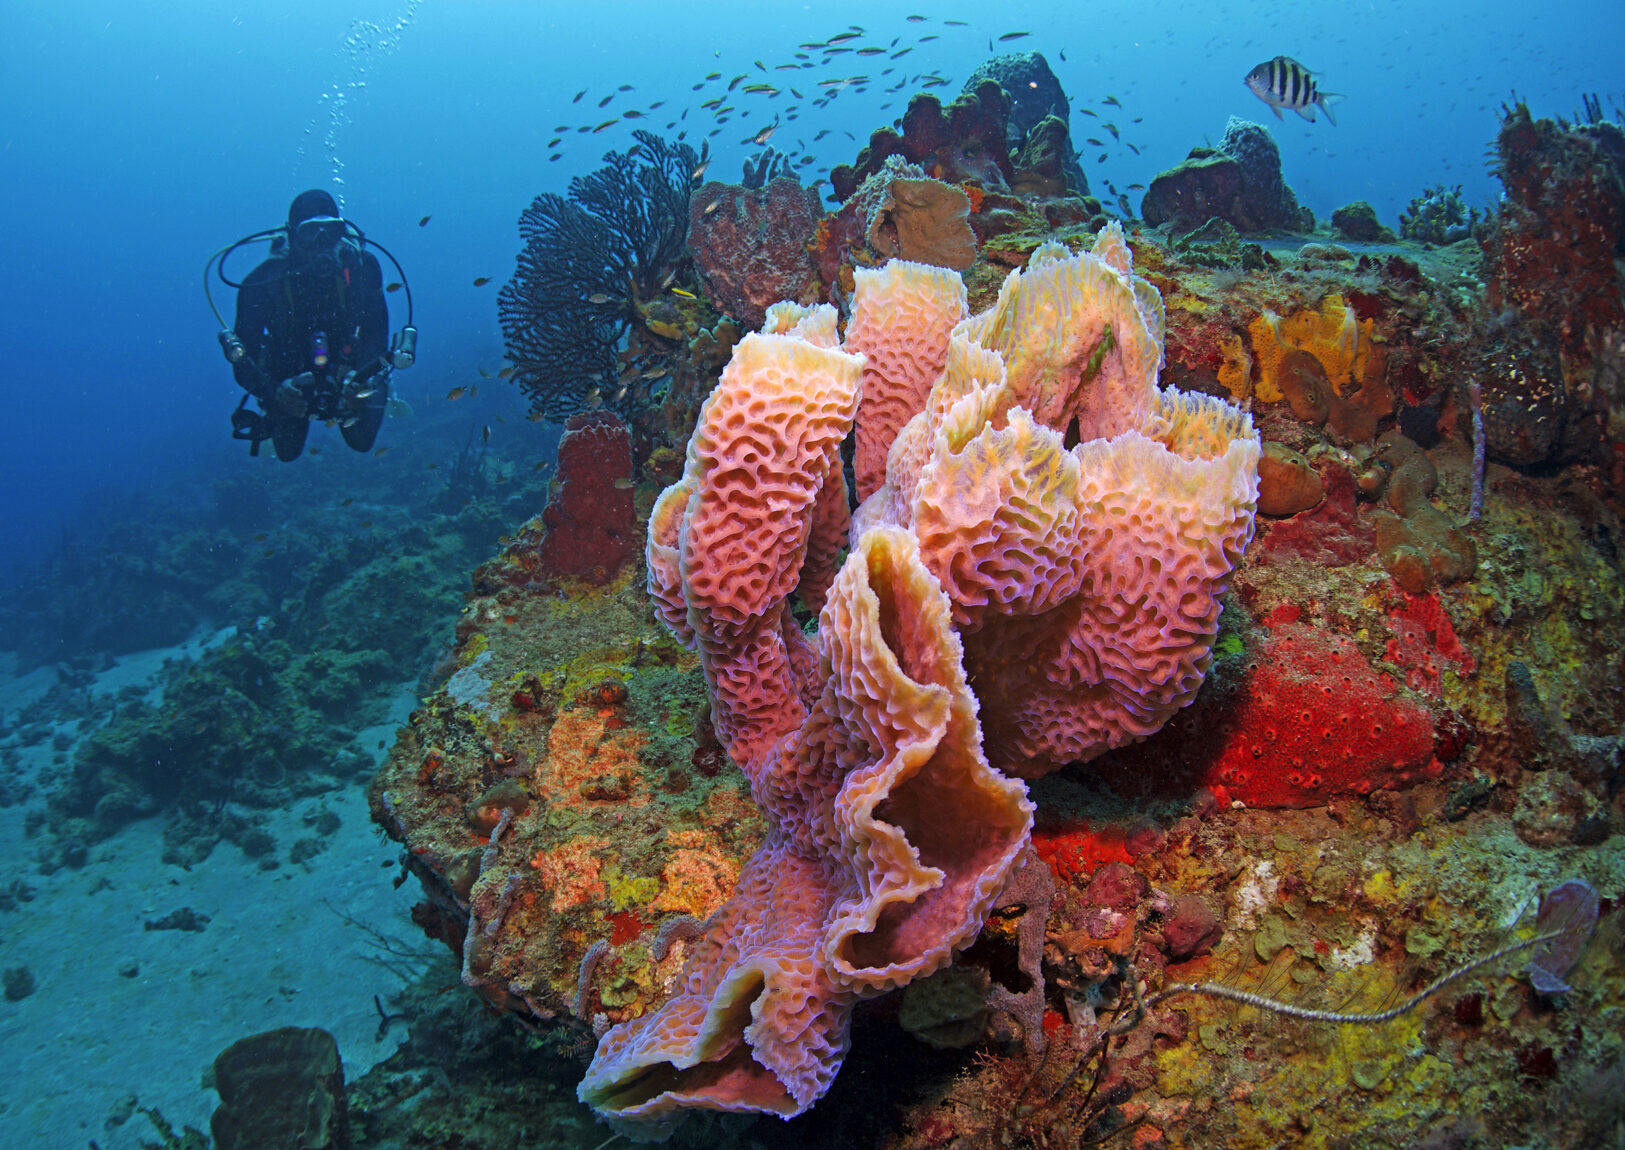 Colorful coral with a scuba diver enjoying the scenery